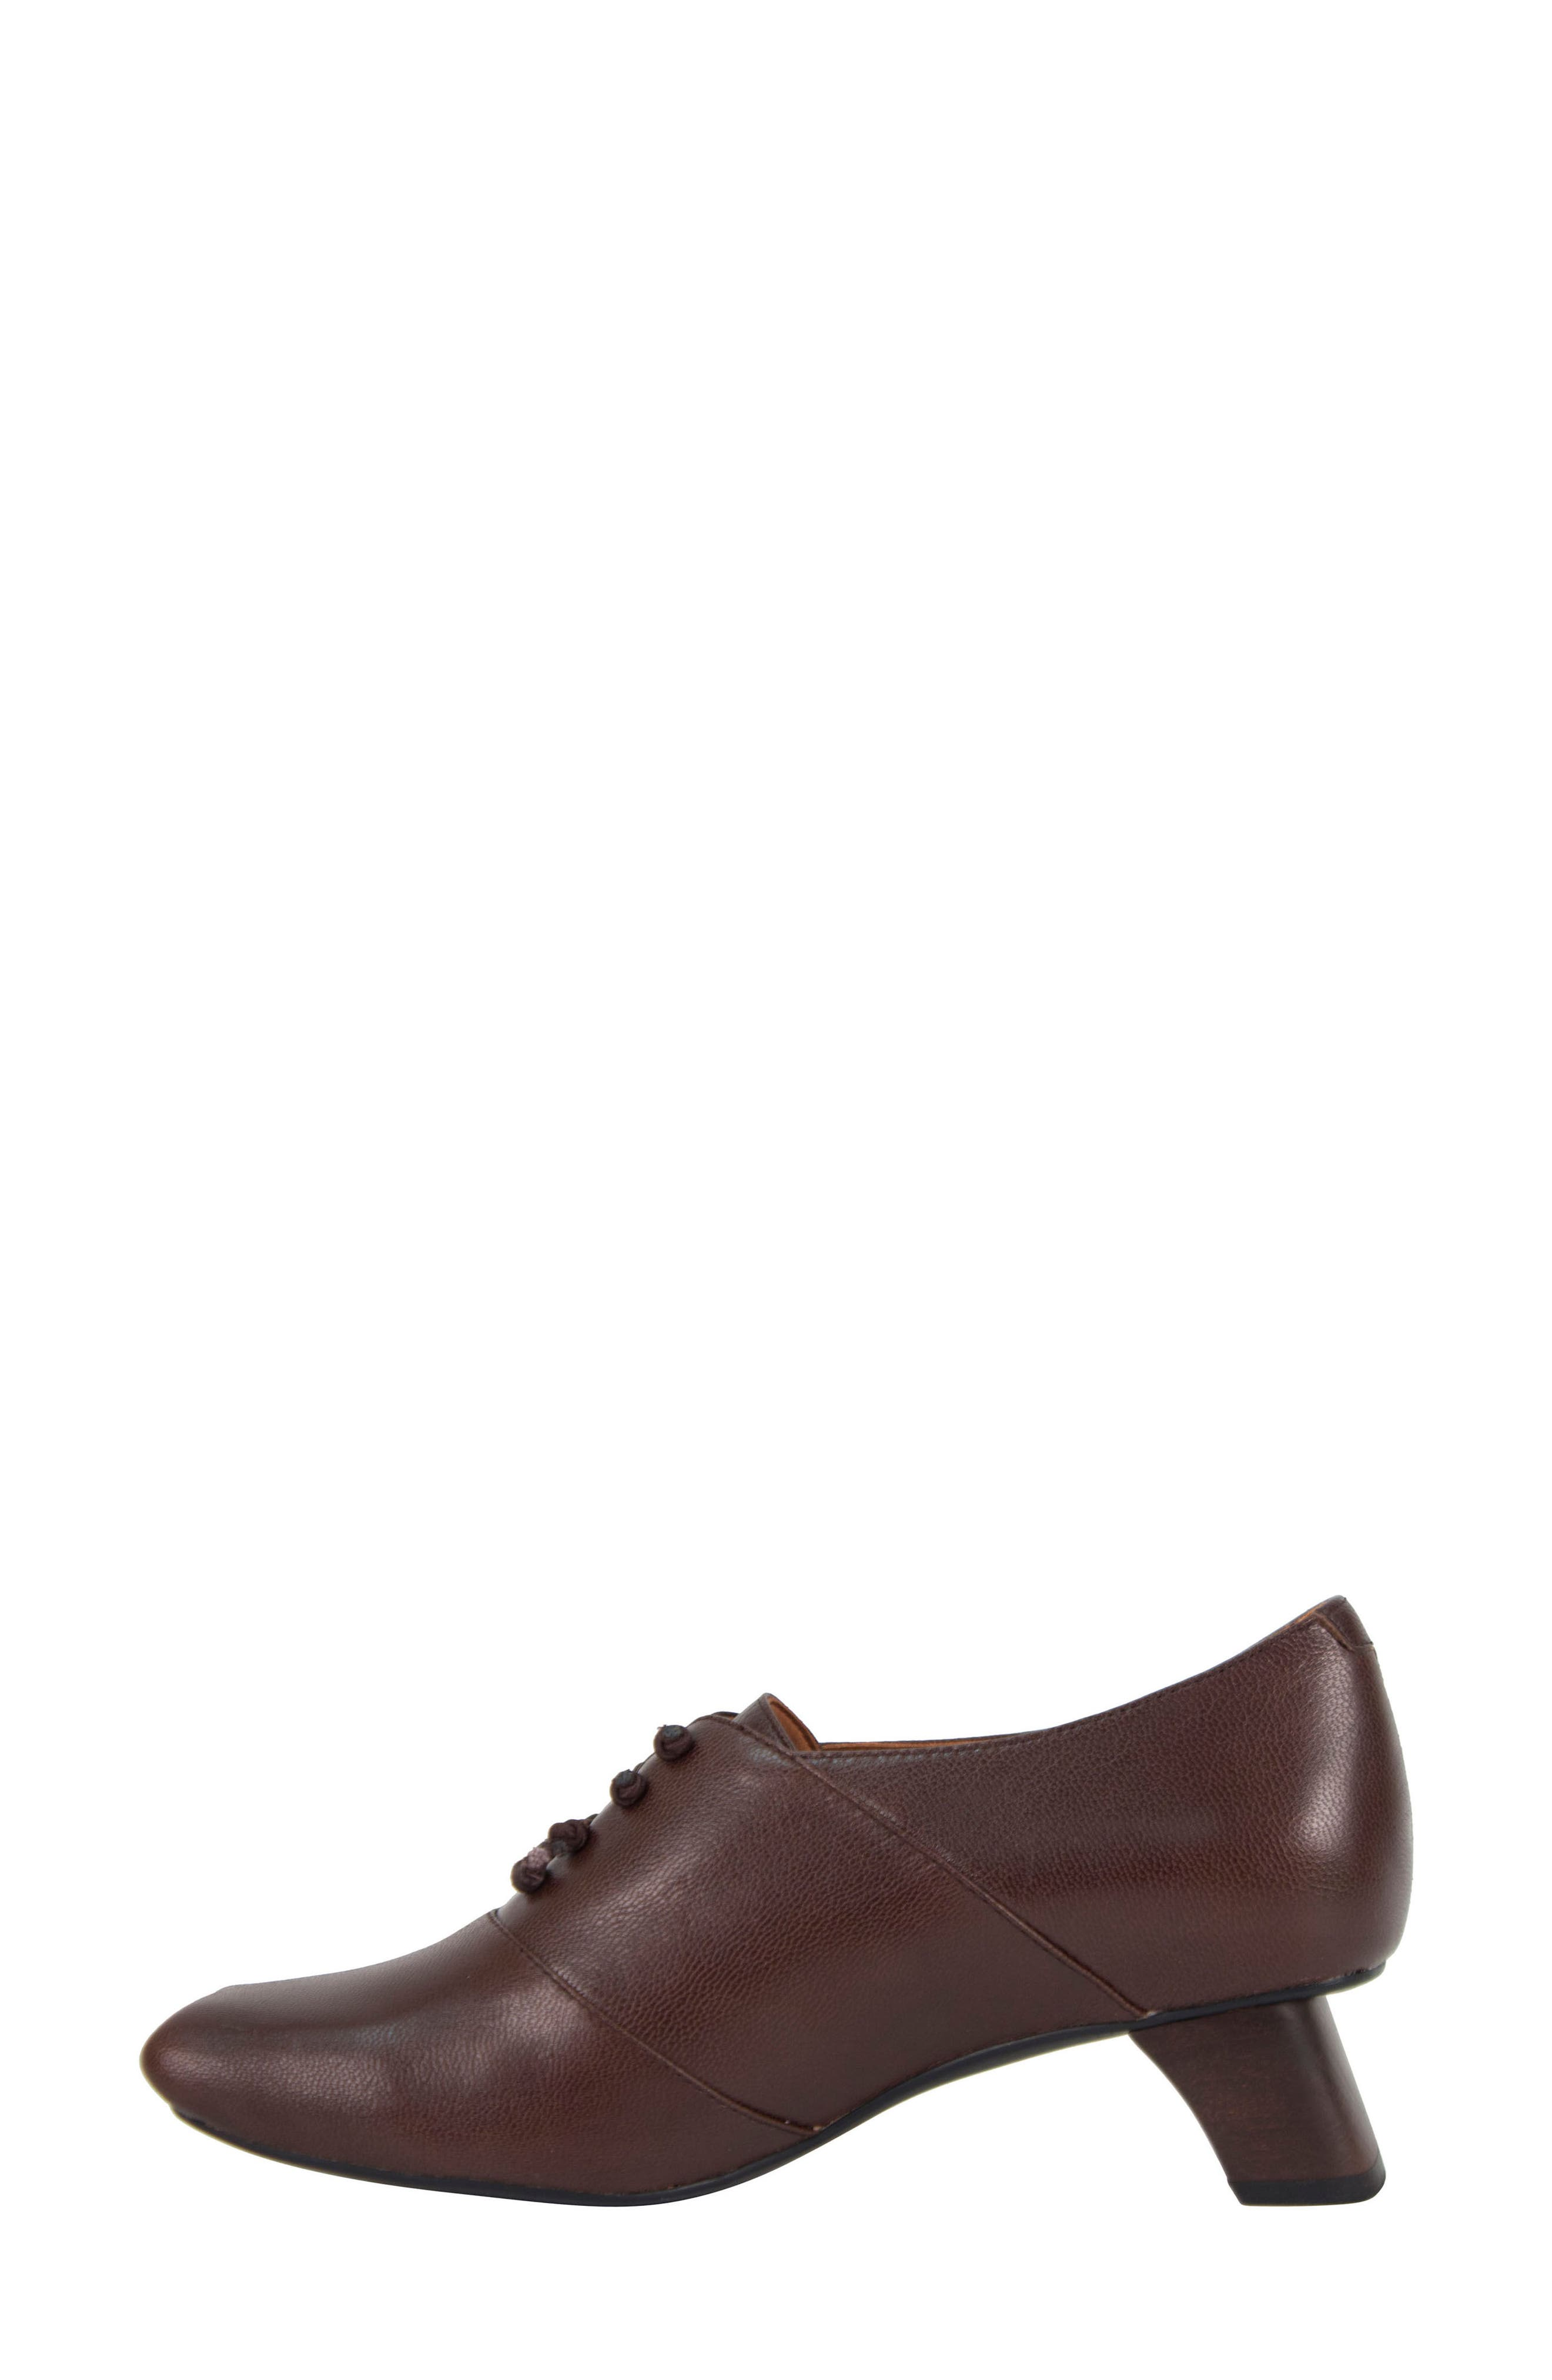 Winifred Lace-Up Bootie,                             Alternate thumbnail 4, color,                             Moro Leather